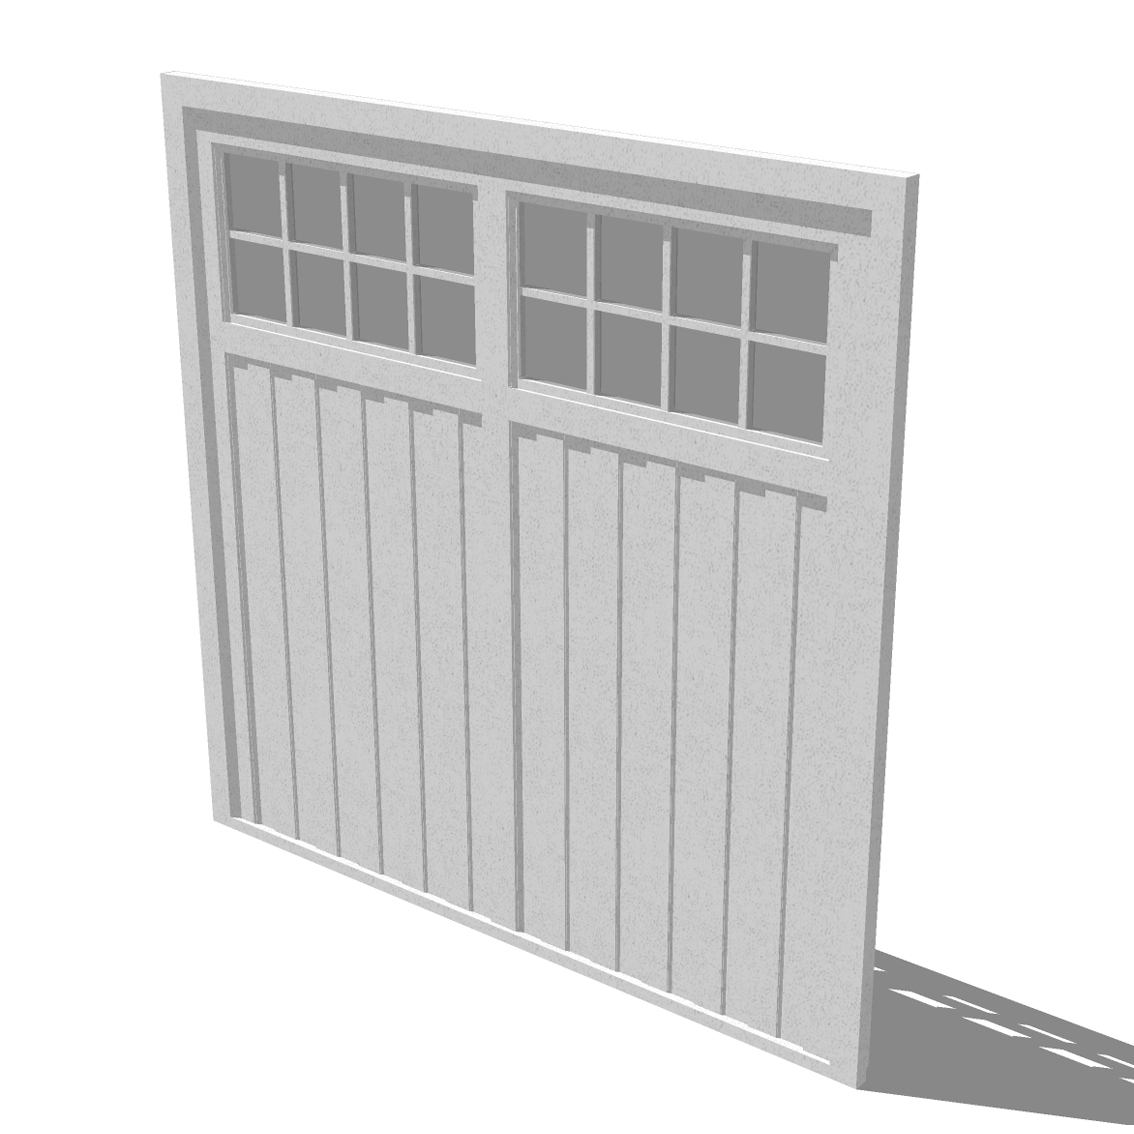 Attractive BARRATT HOMES STANDARD GARAGE DOOR 3D Model